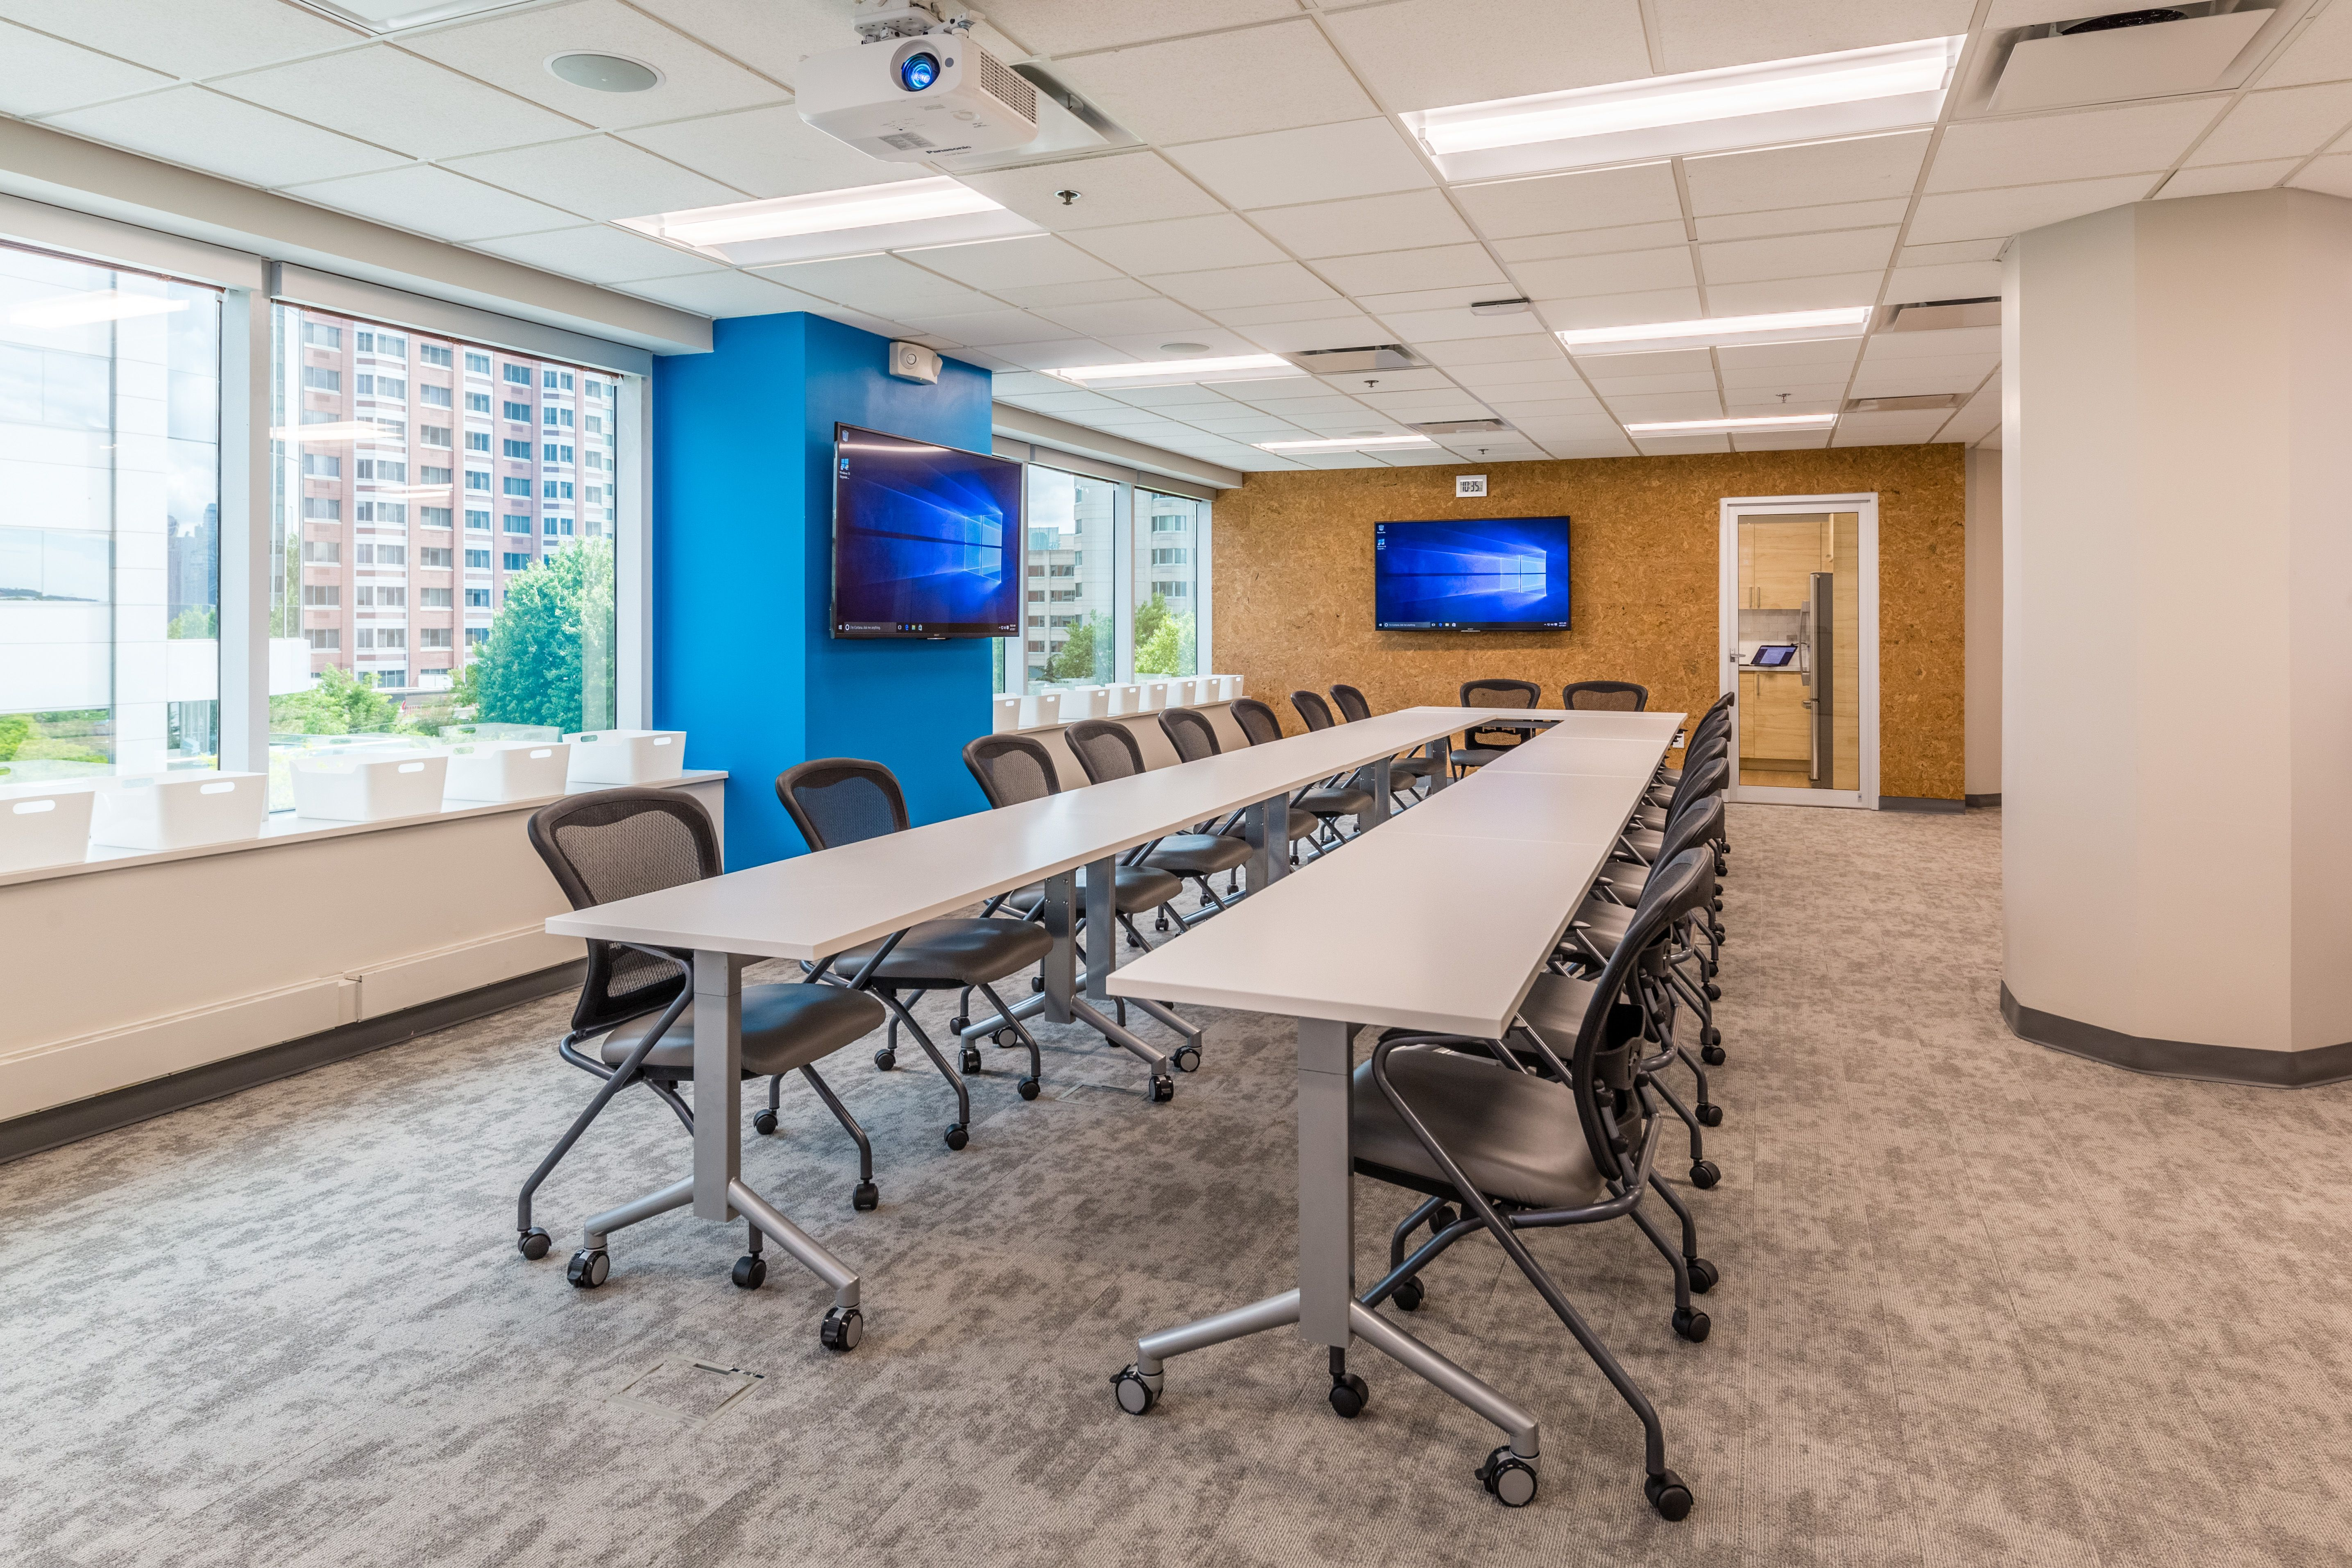 Worksocial Offers Affordable Conference Rooms For Rent In New Jersey To Host A Team Meeting Client Meeting Rooms For Rent Meeting Room Design Conference Room